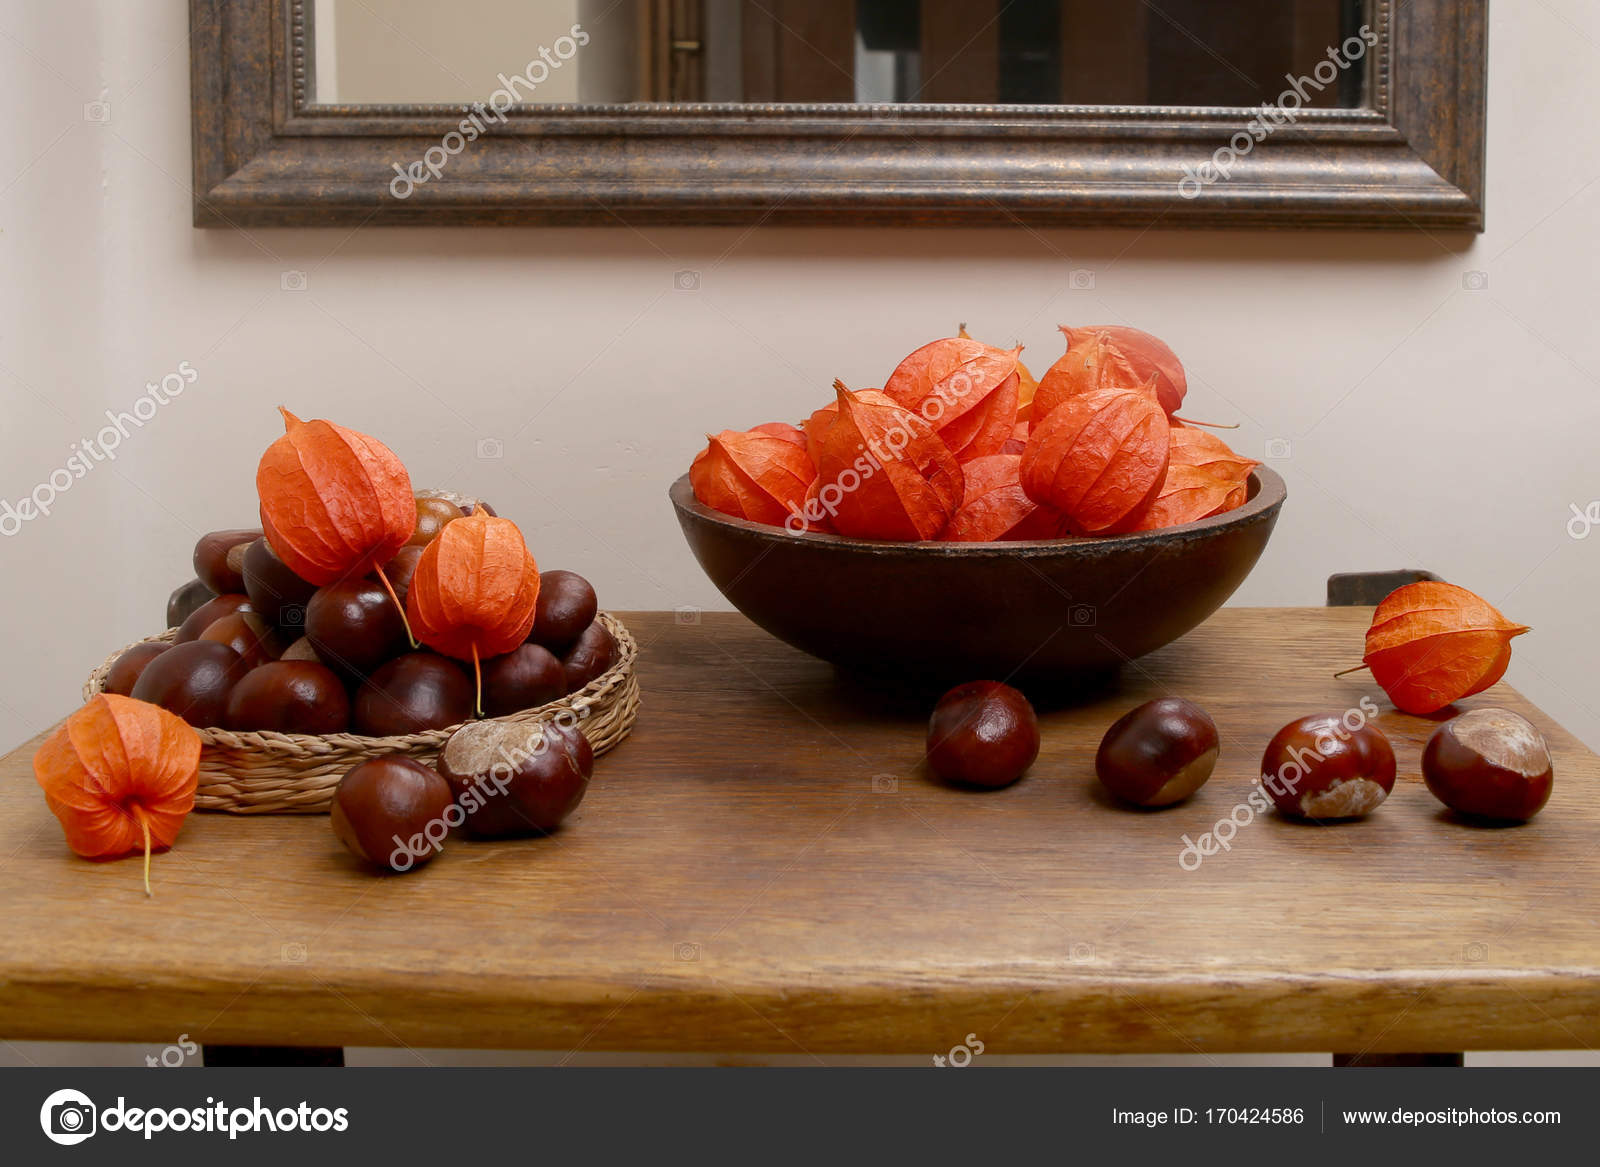 Herfst In Interieur : Herfst plant decoraties in interieur u2014 stockfoto © vaitekune #170424586